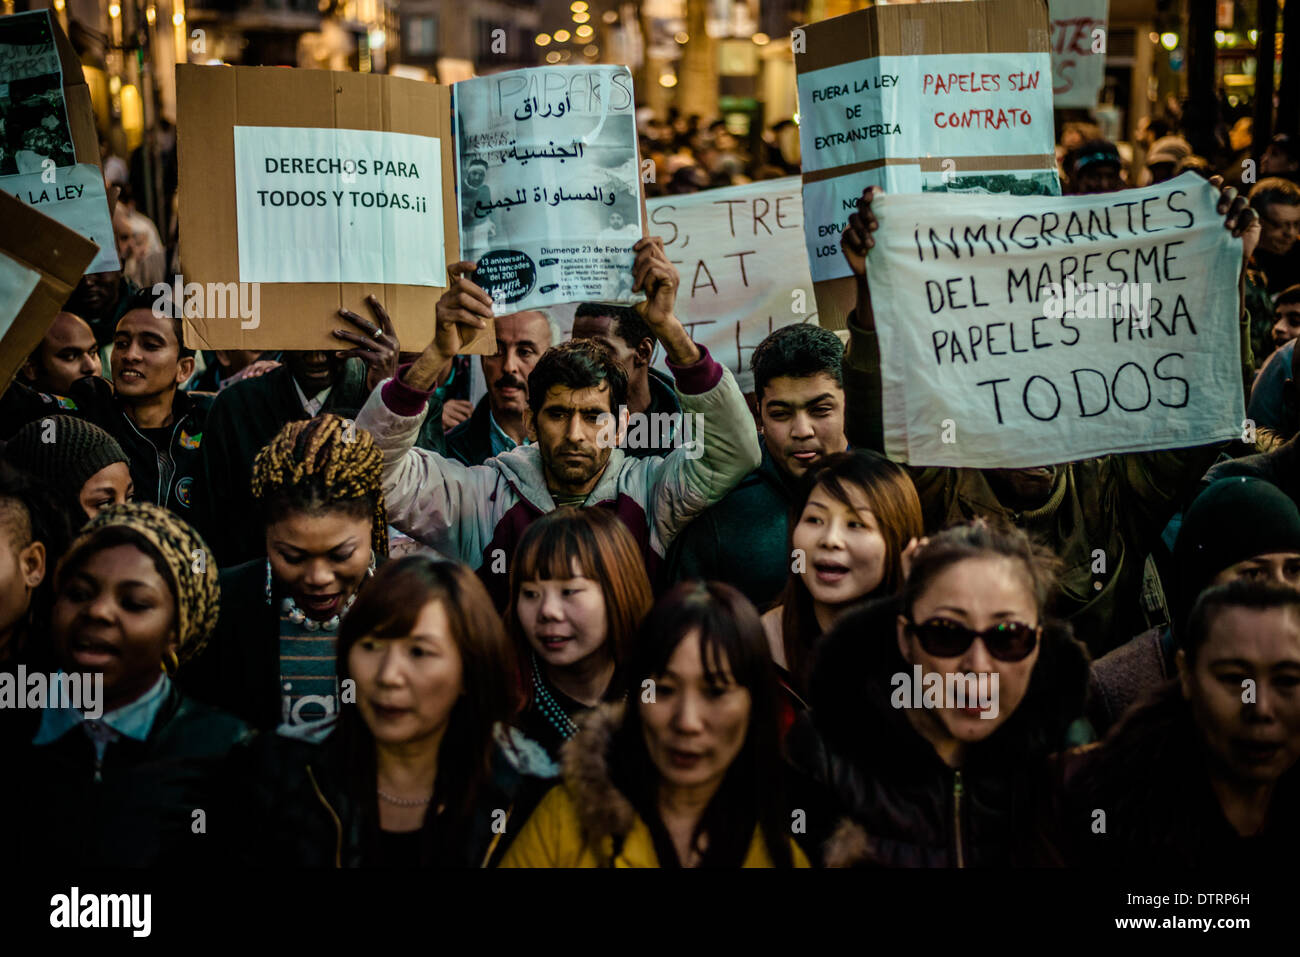 Barcelona, Spain. February 23rd, 2014: Immigrants holding placards march for immigration rights and papers through Stock Photo